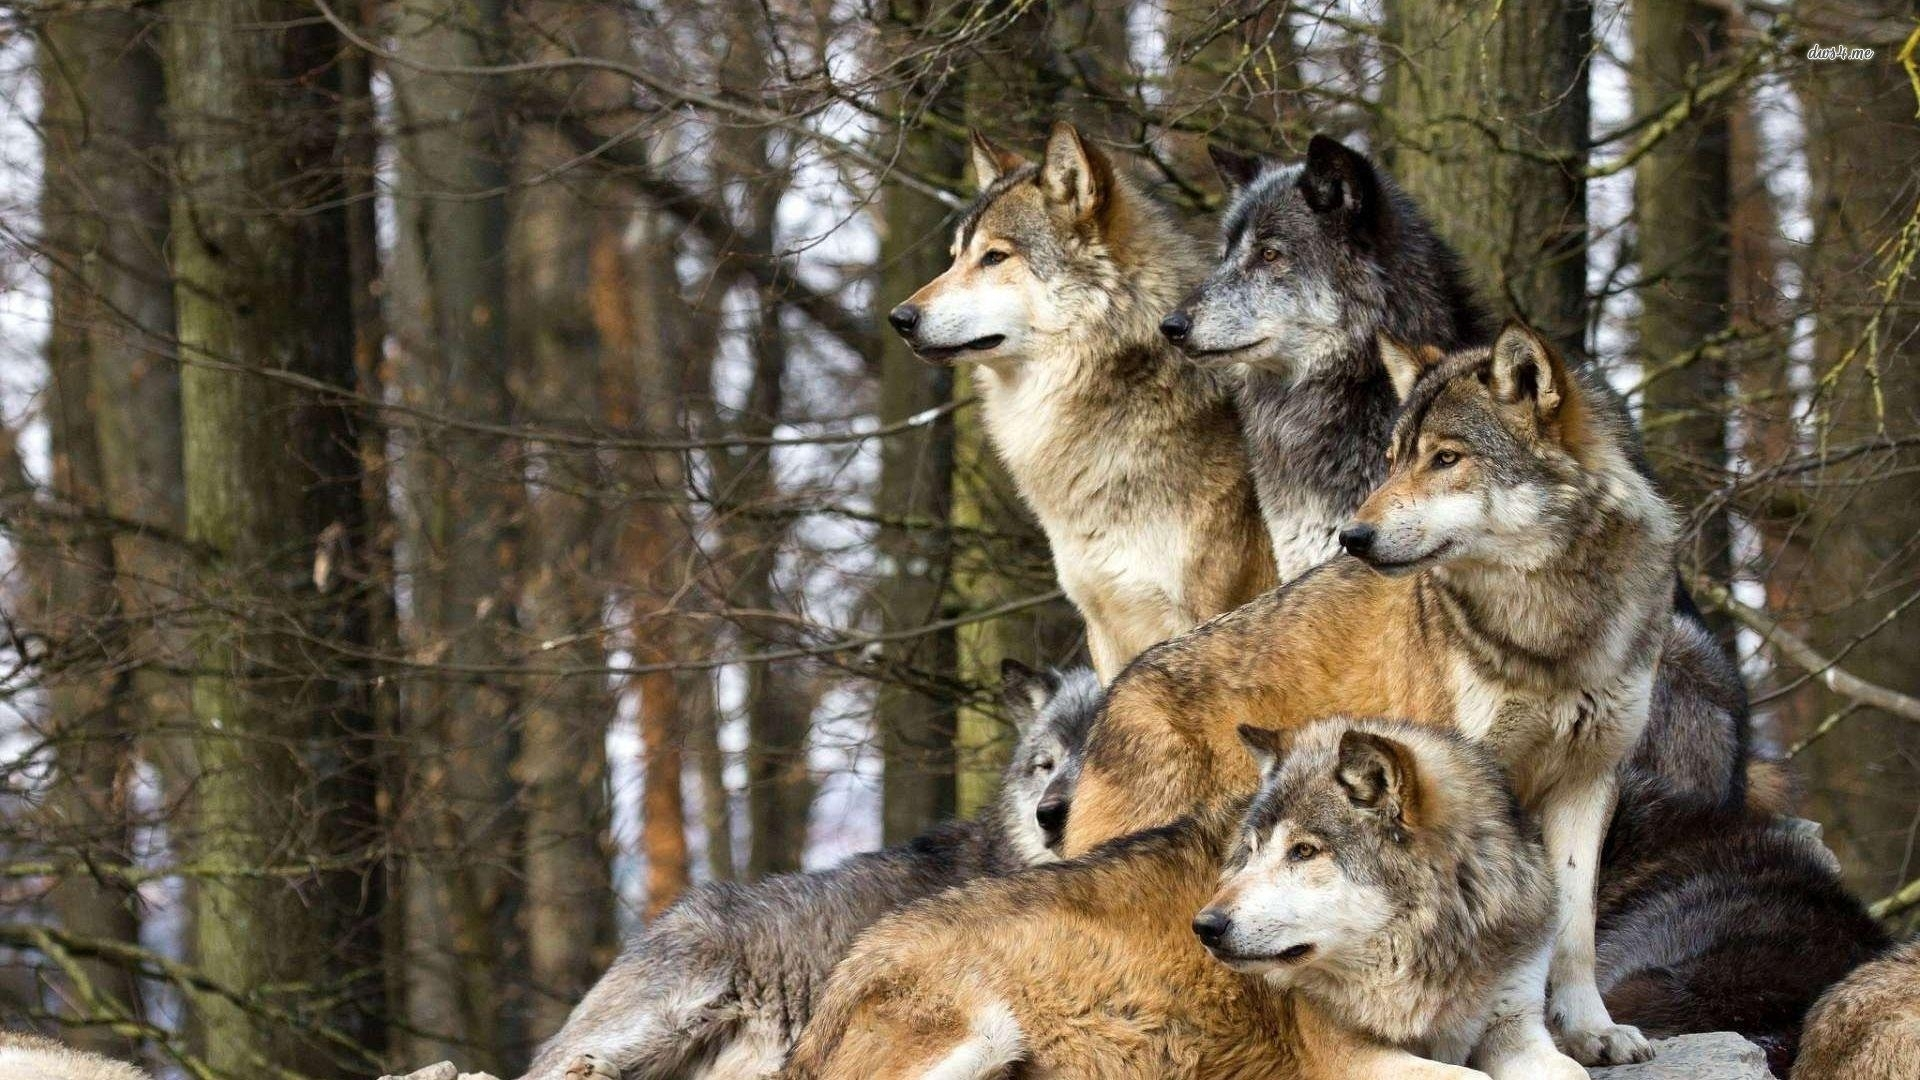 10 Best Wolf Pack Wallpaper Hd FULL HD 1080p For PC Background